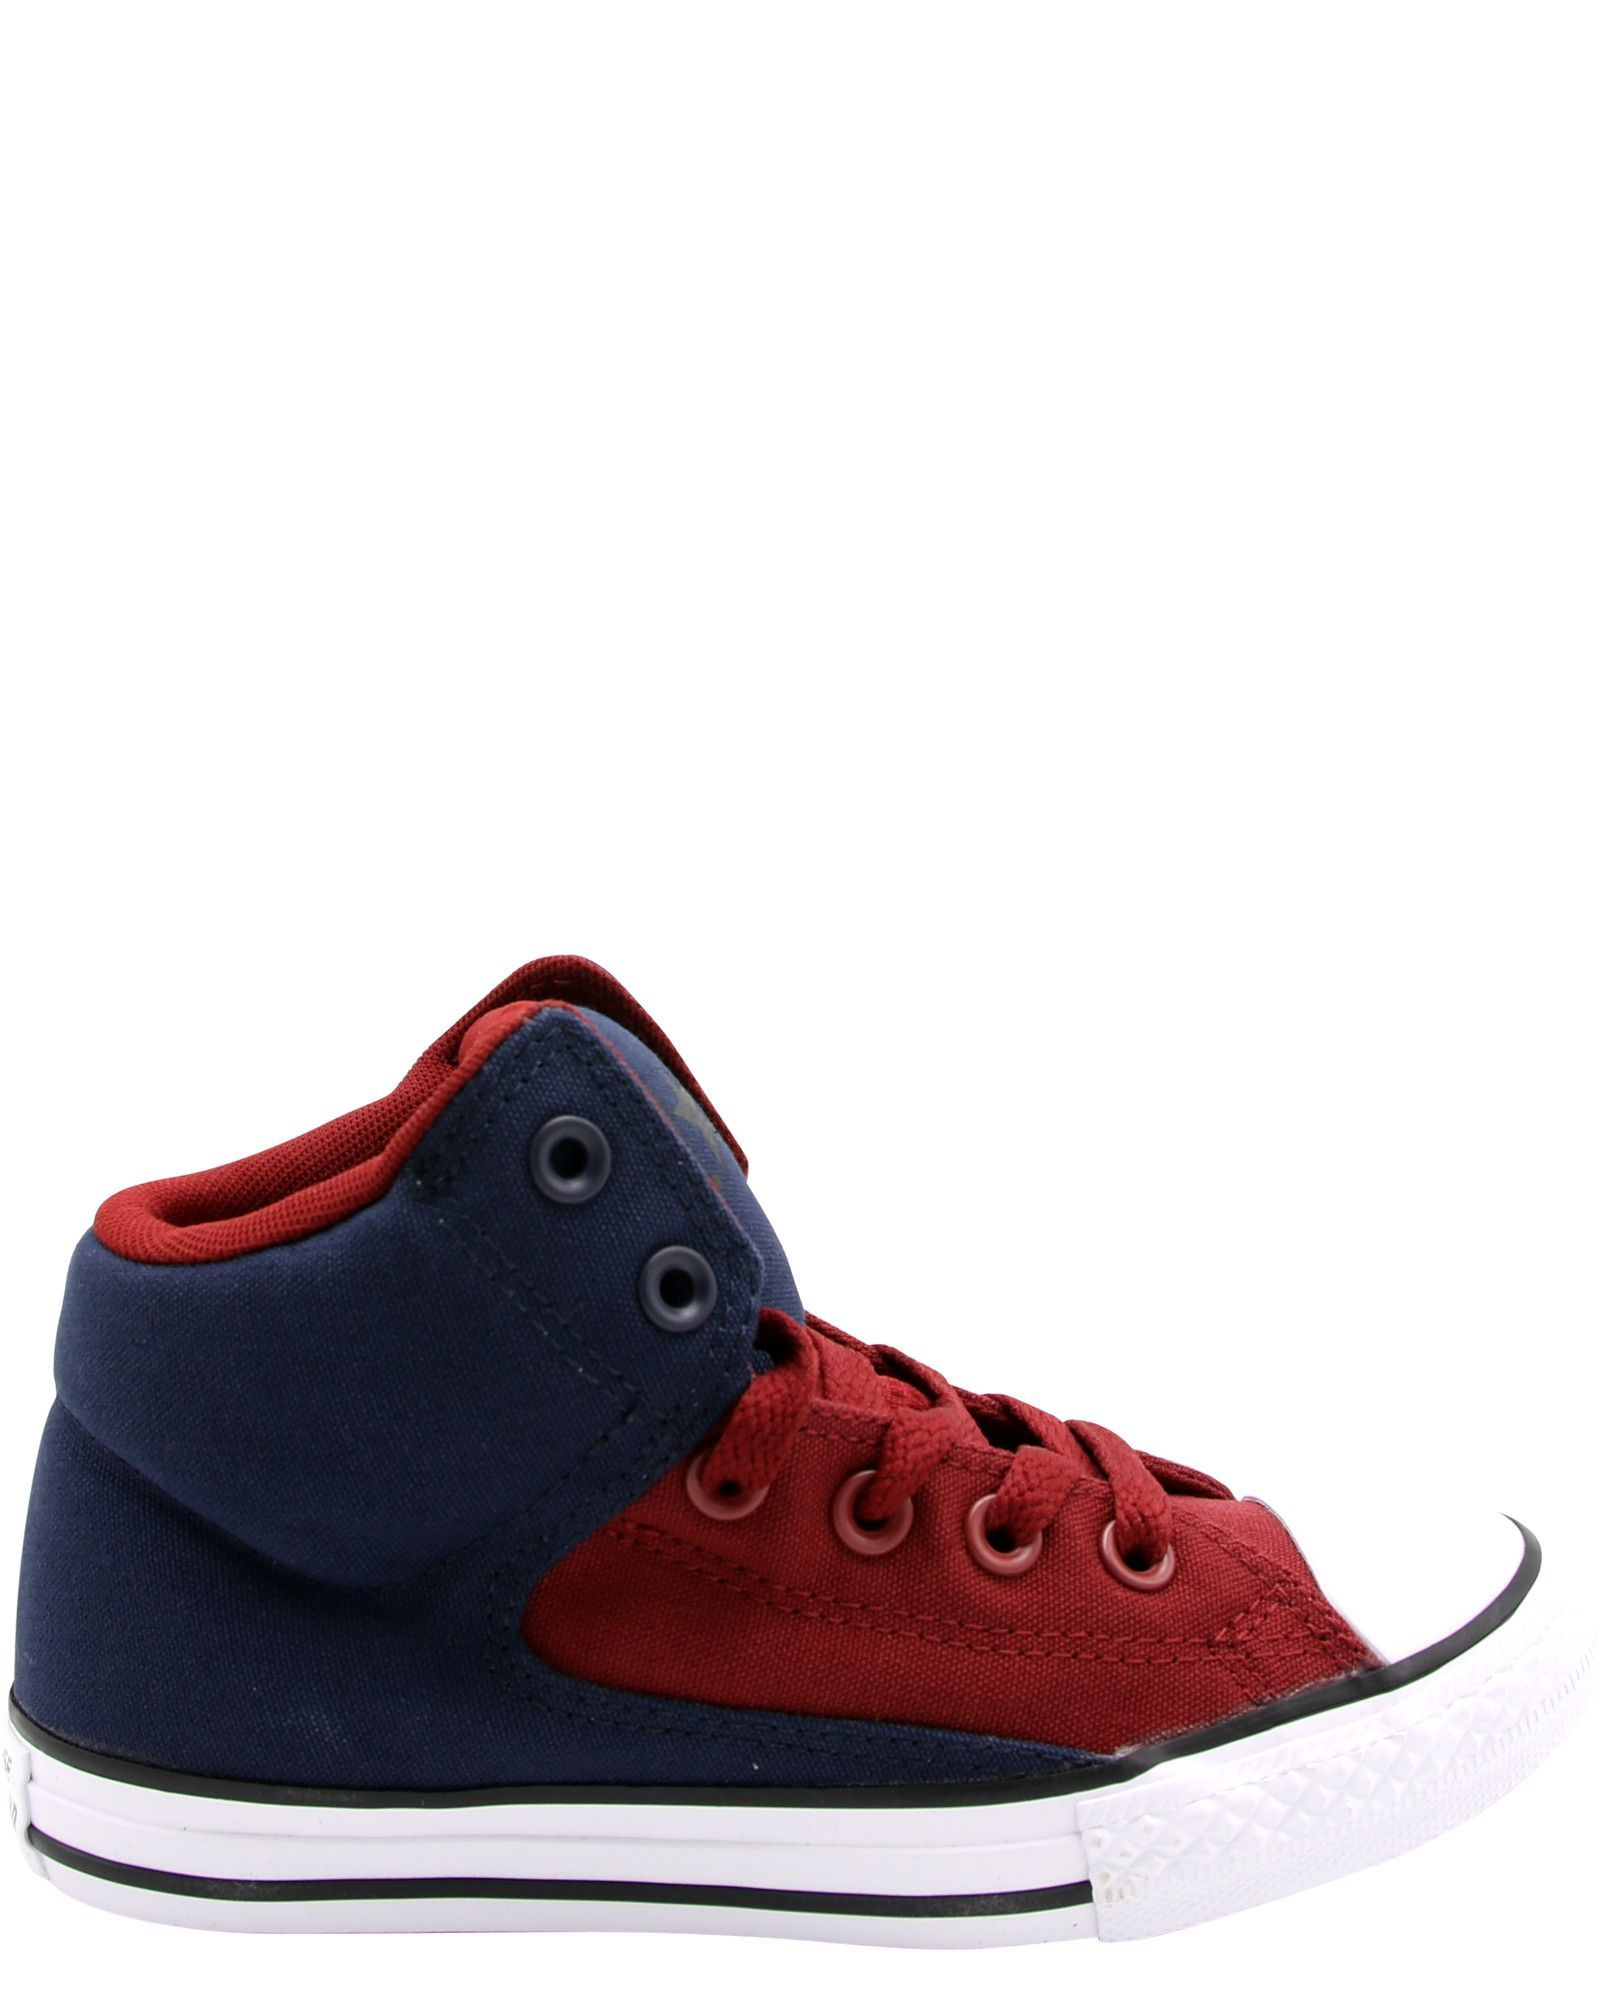 779b74e766dc Converse - Boy s Ct As High Street Sneakers (Big Kid)- Obsidian Red White